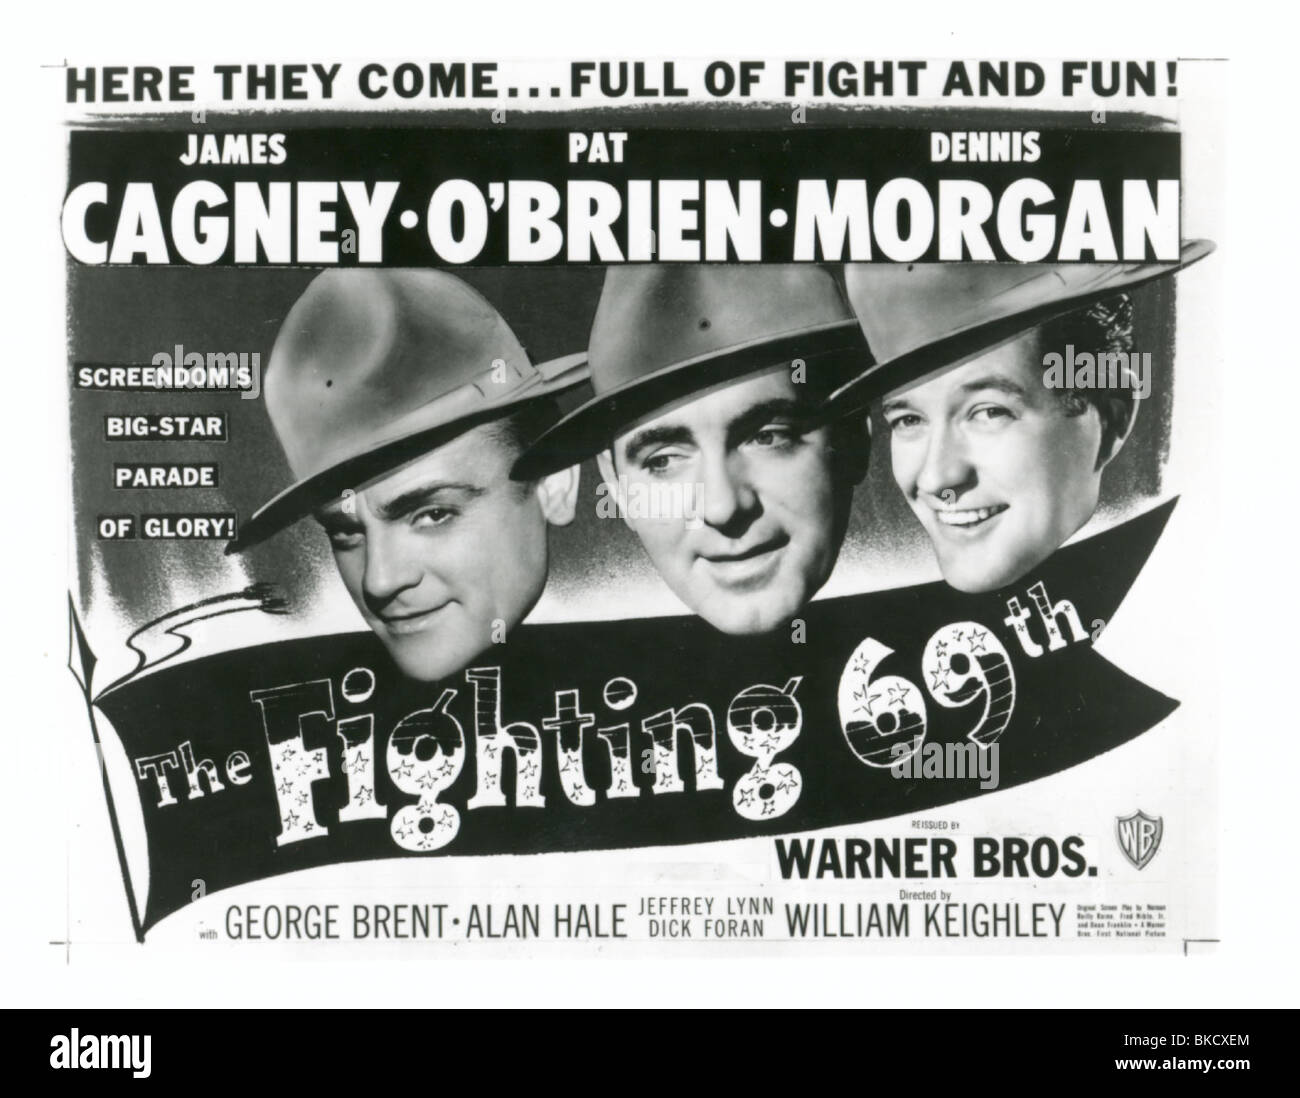 THE FIGHTING 69TH (1940) POSTER FG69 002P - Stock Image